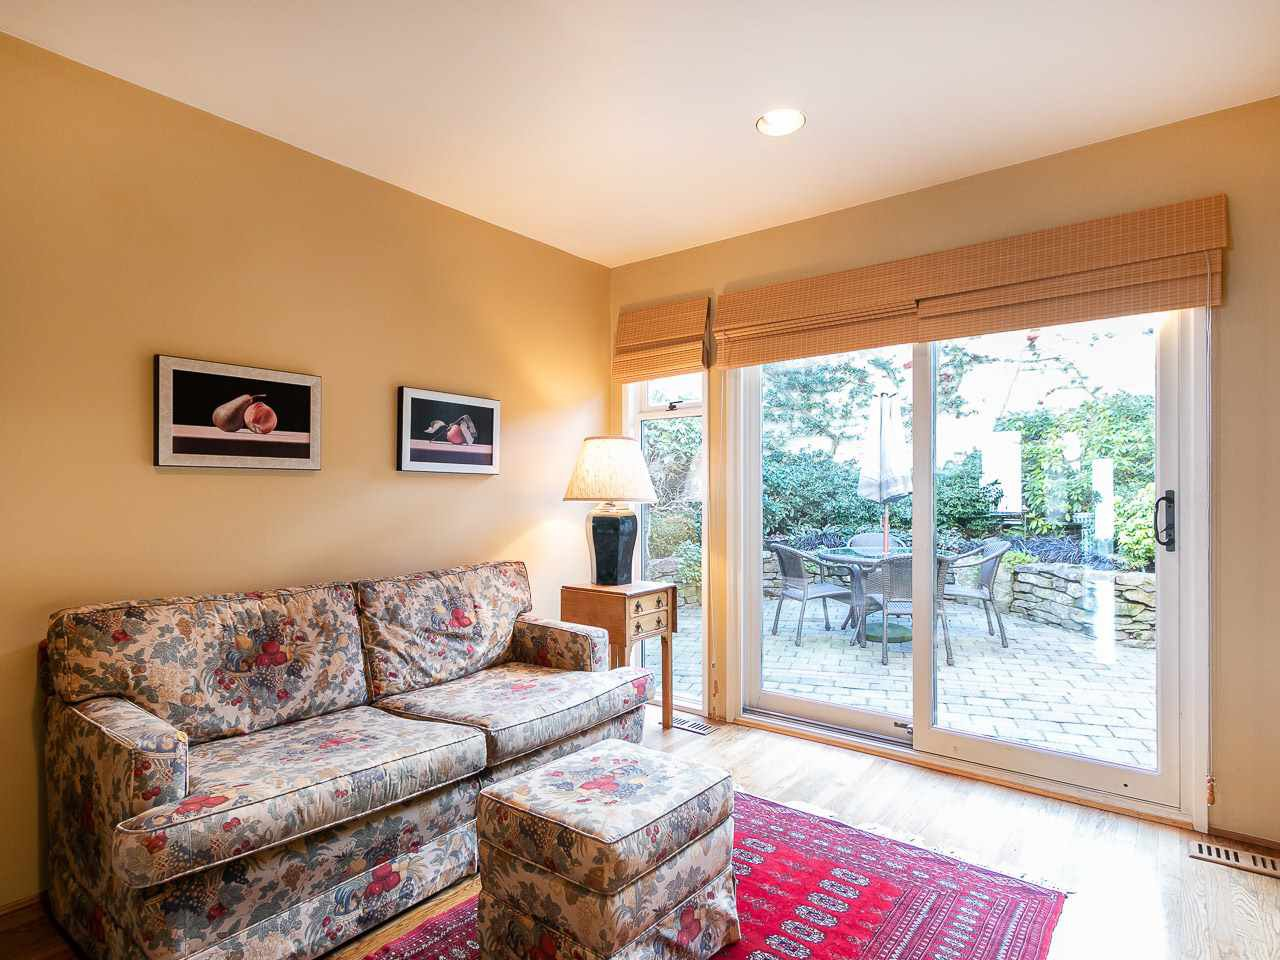 Photo 12: Photos: 2 1980 SASAMAT STREET in Vancouver: Point Grey Townhouse for sale (Vancouver West)  : MLS®# R2357115